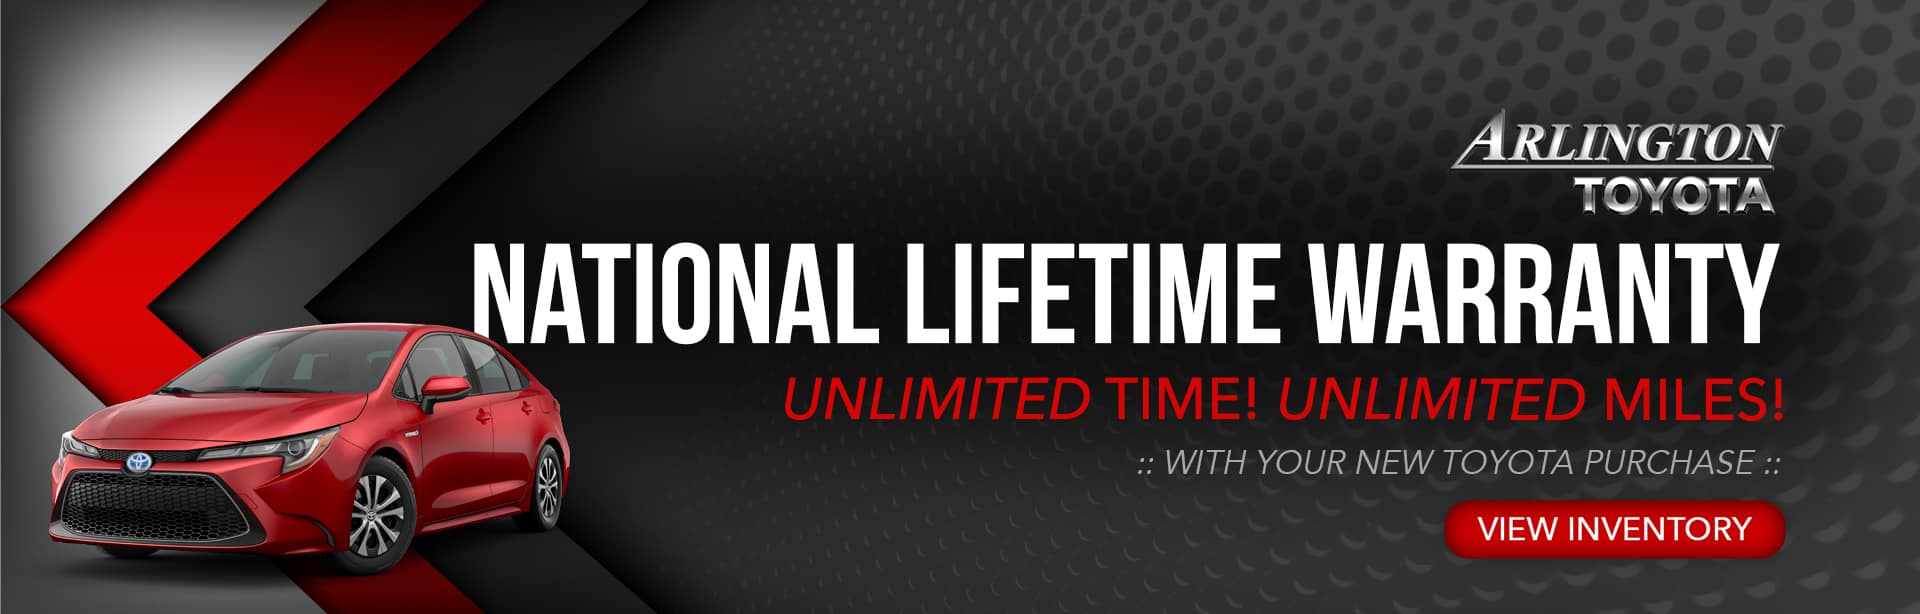 NationalLifetimeWarranty_July2020_Homepage1920x614